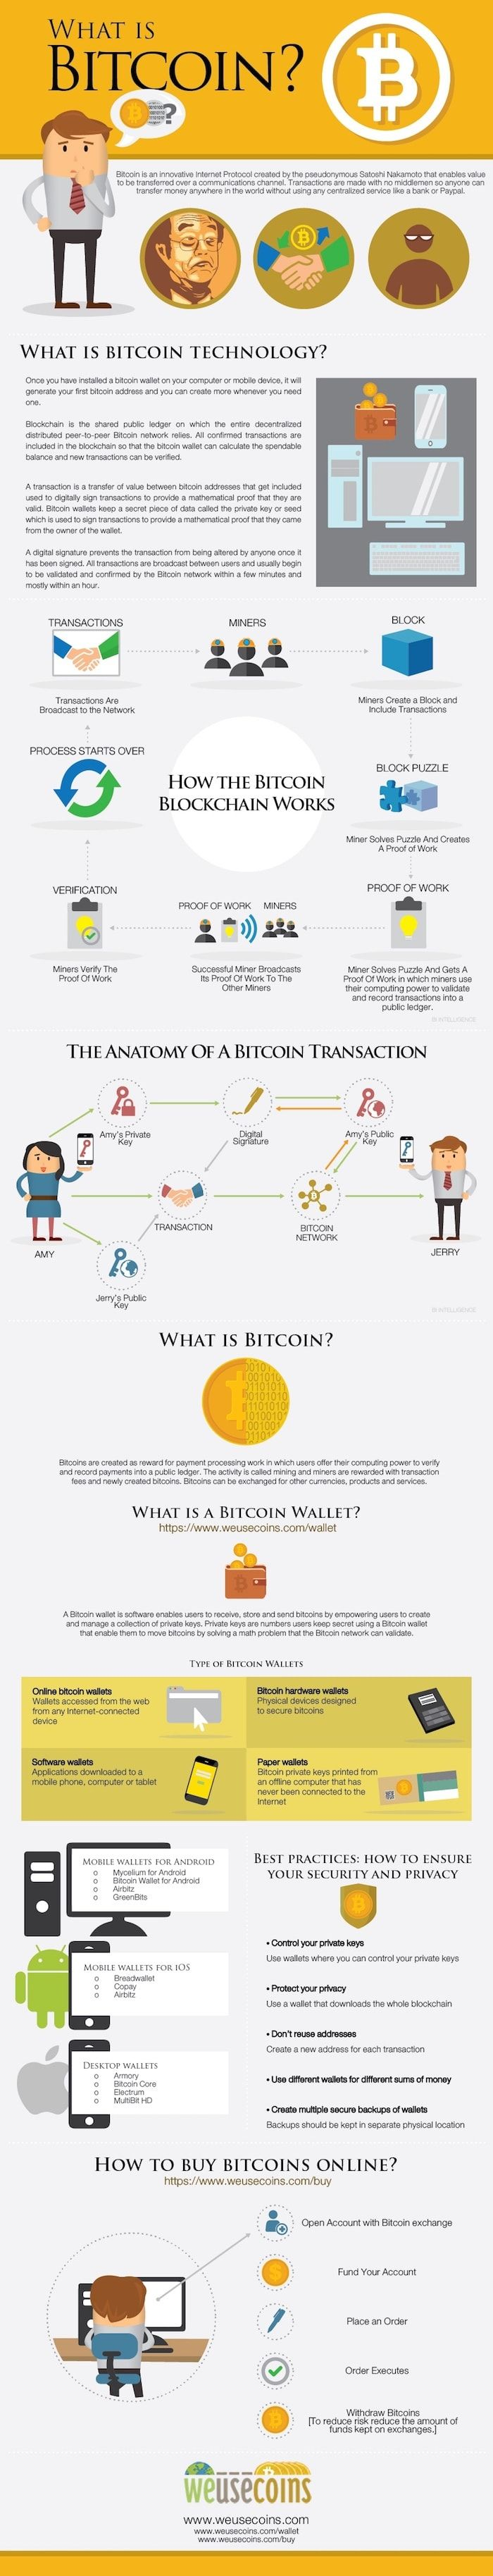 what-is-bitcoin.jpg (700×3656)